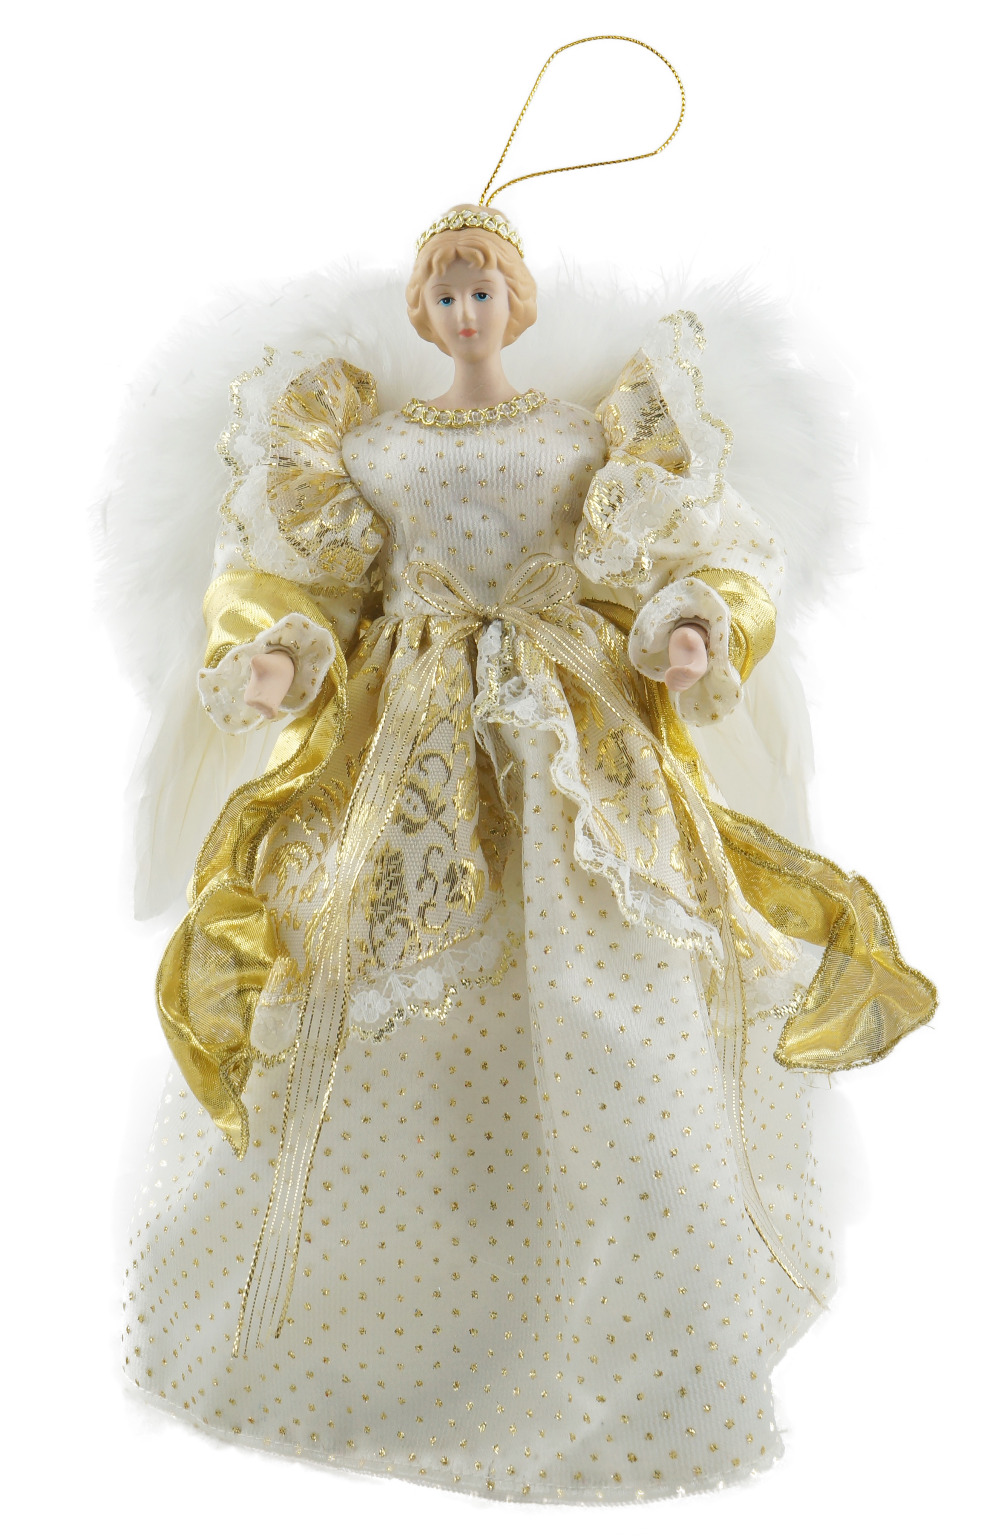 Christmas Angel Tree Topper.Cosette Christmas Angel Tree Topper Porcelain Doll Tree Ornament 12 Inches 30 Cm Height Decorated Christmas Ornaments Decorated Homes For Christmas